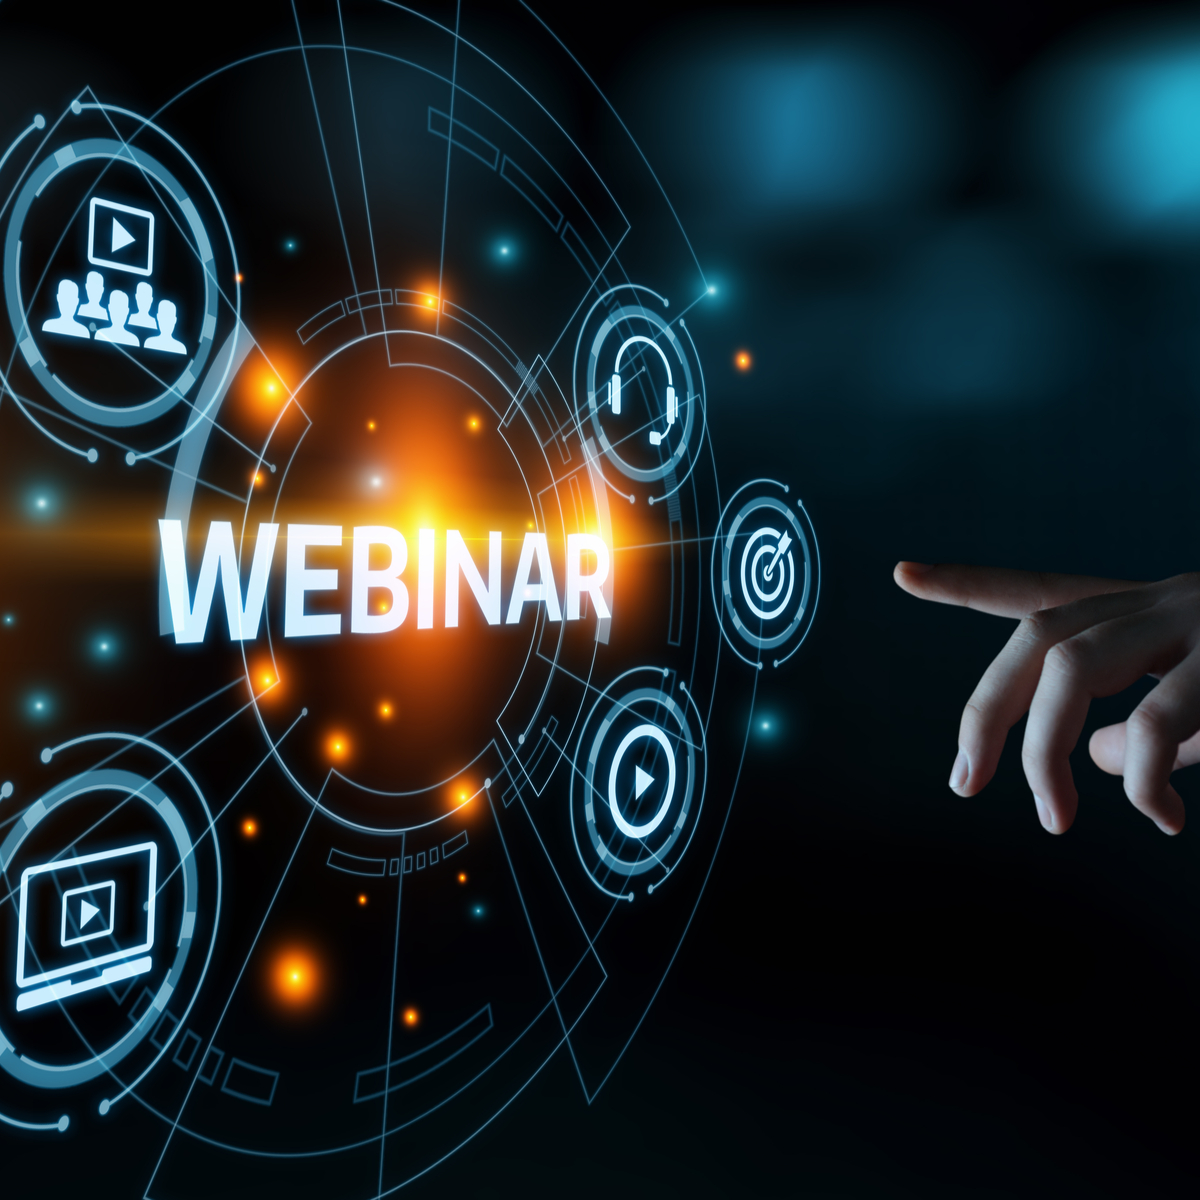 Are Webcasts a good marketing tool?